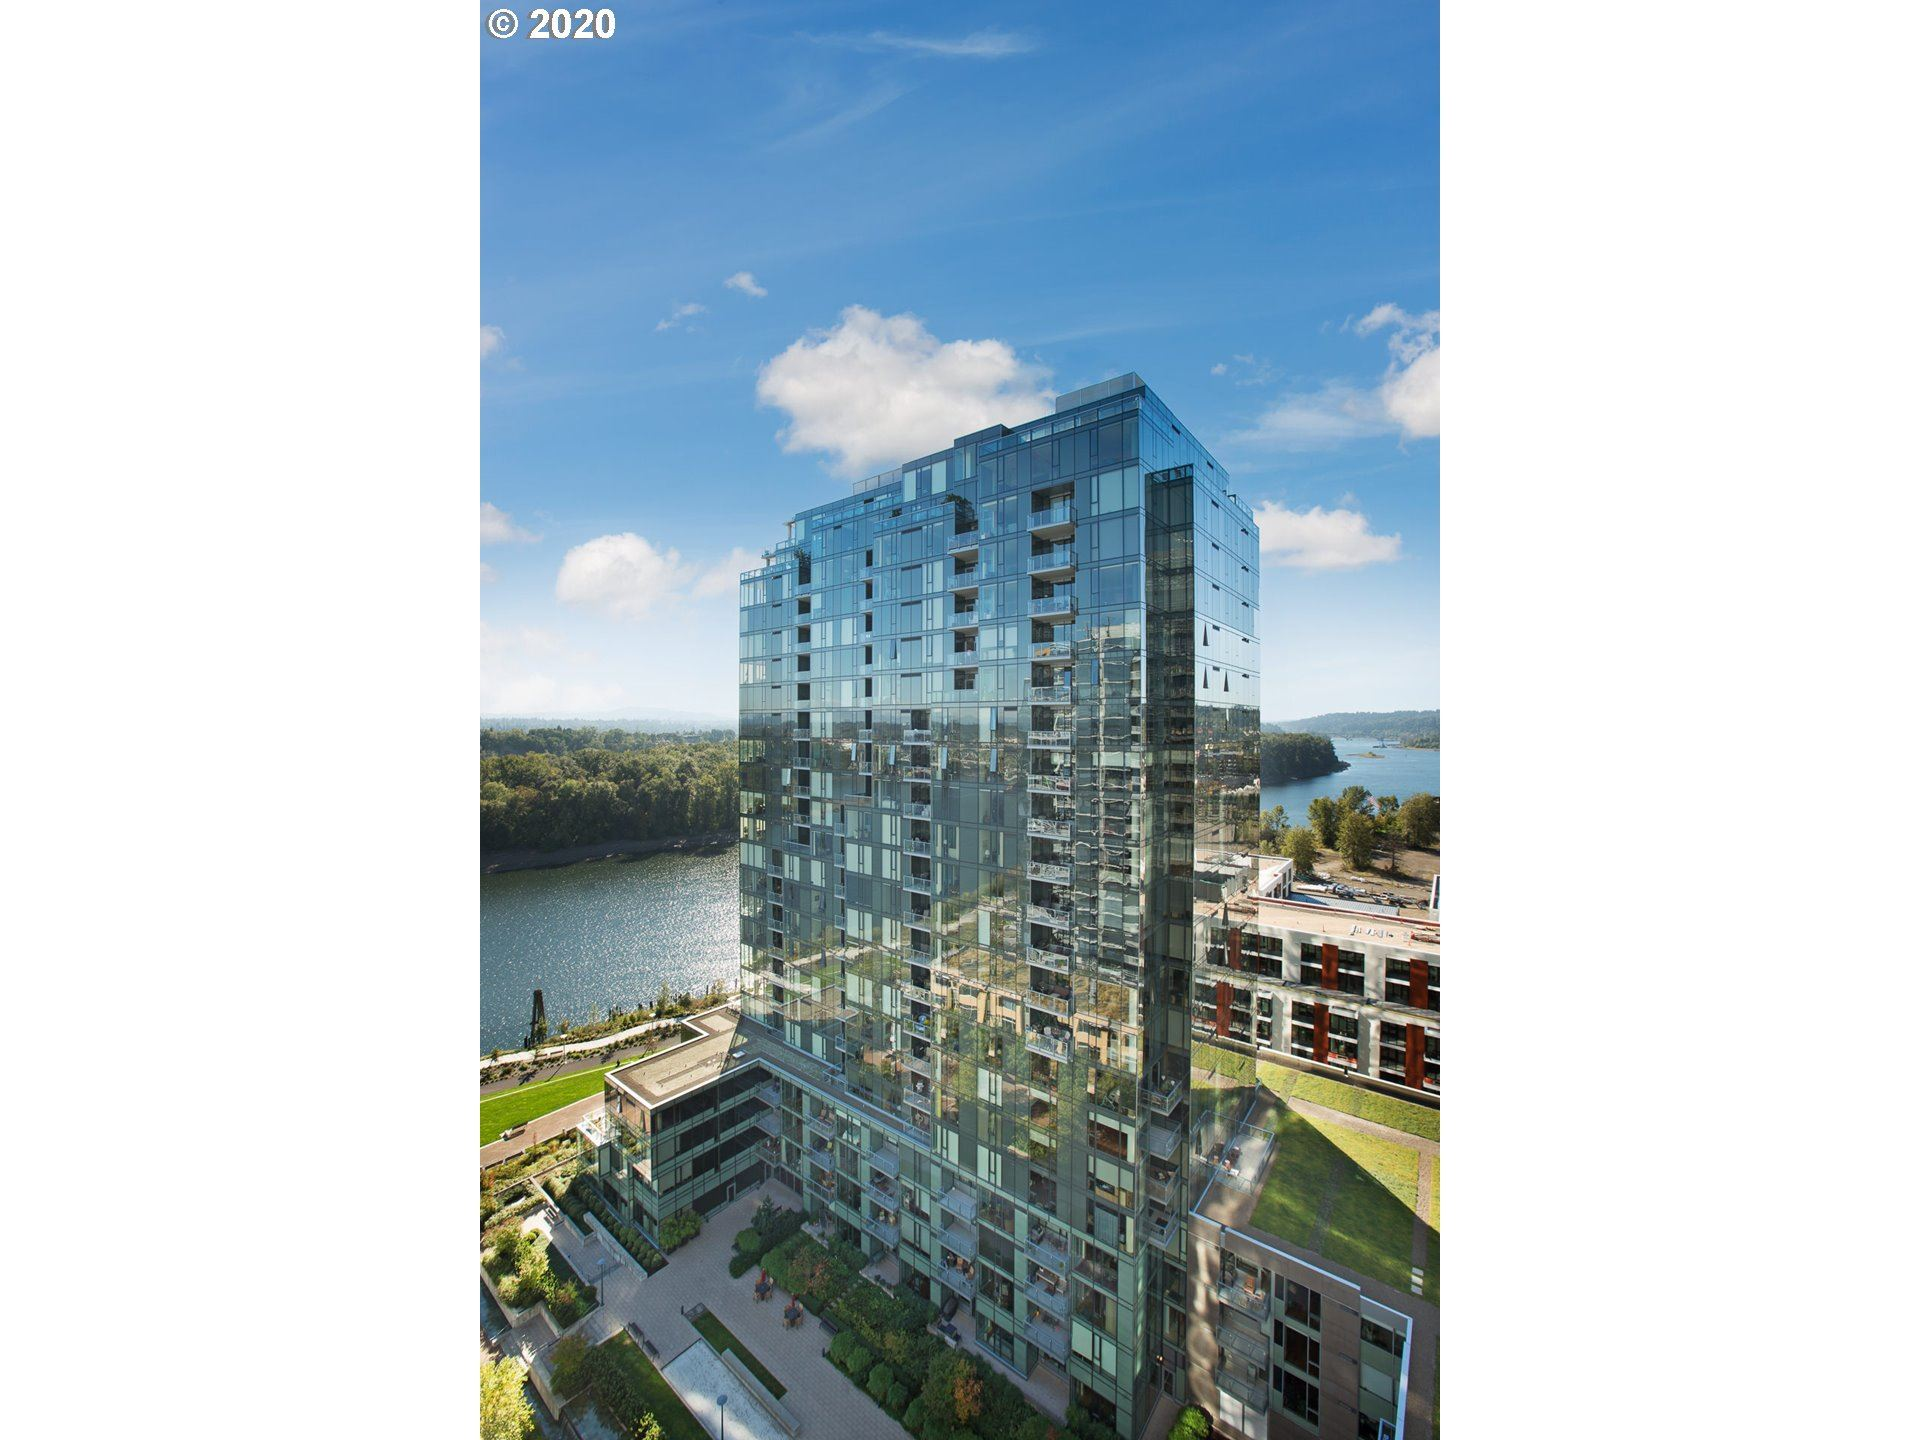 841 S GAINES ST #331, Portland, OR 97239 - MLS#: 19598258